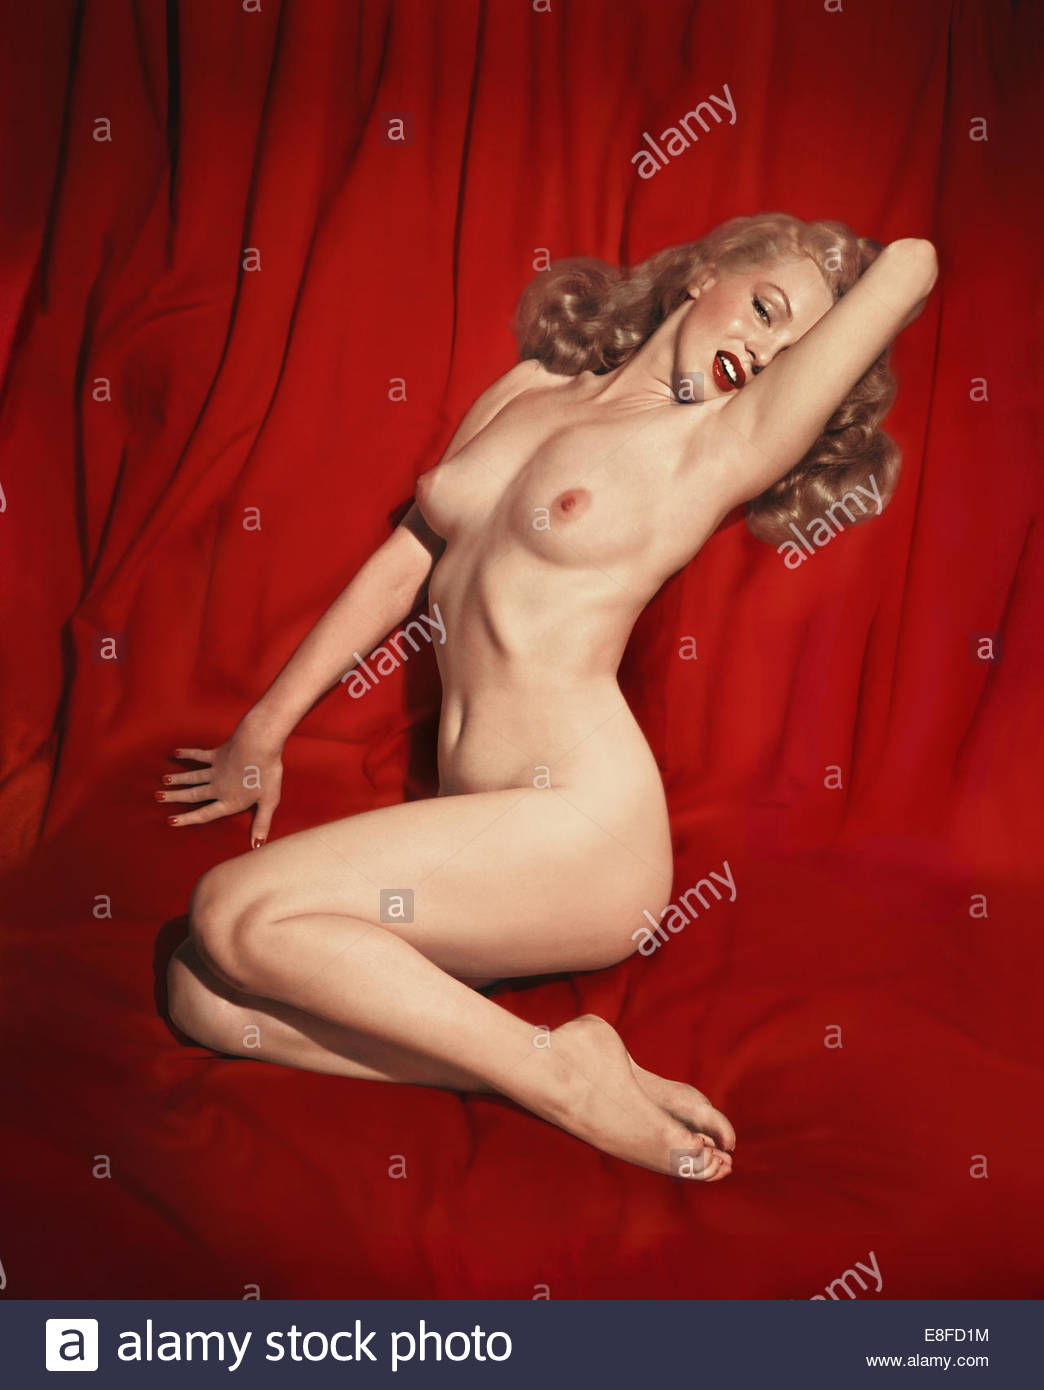 Marilyn Monroe. Artist: Kelley, Tom, Sr. (1914-1984) - Stock Image